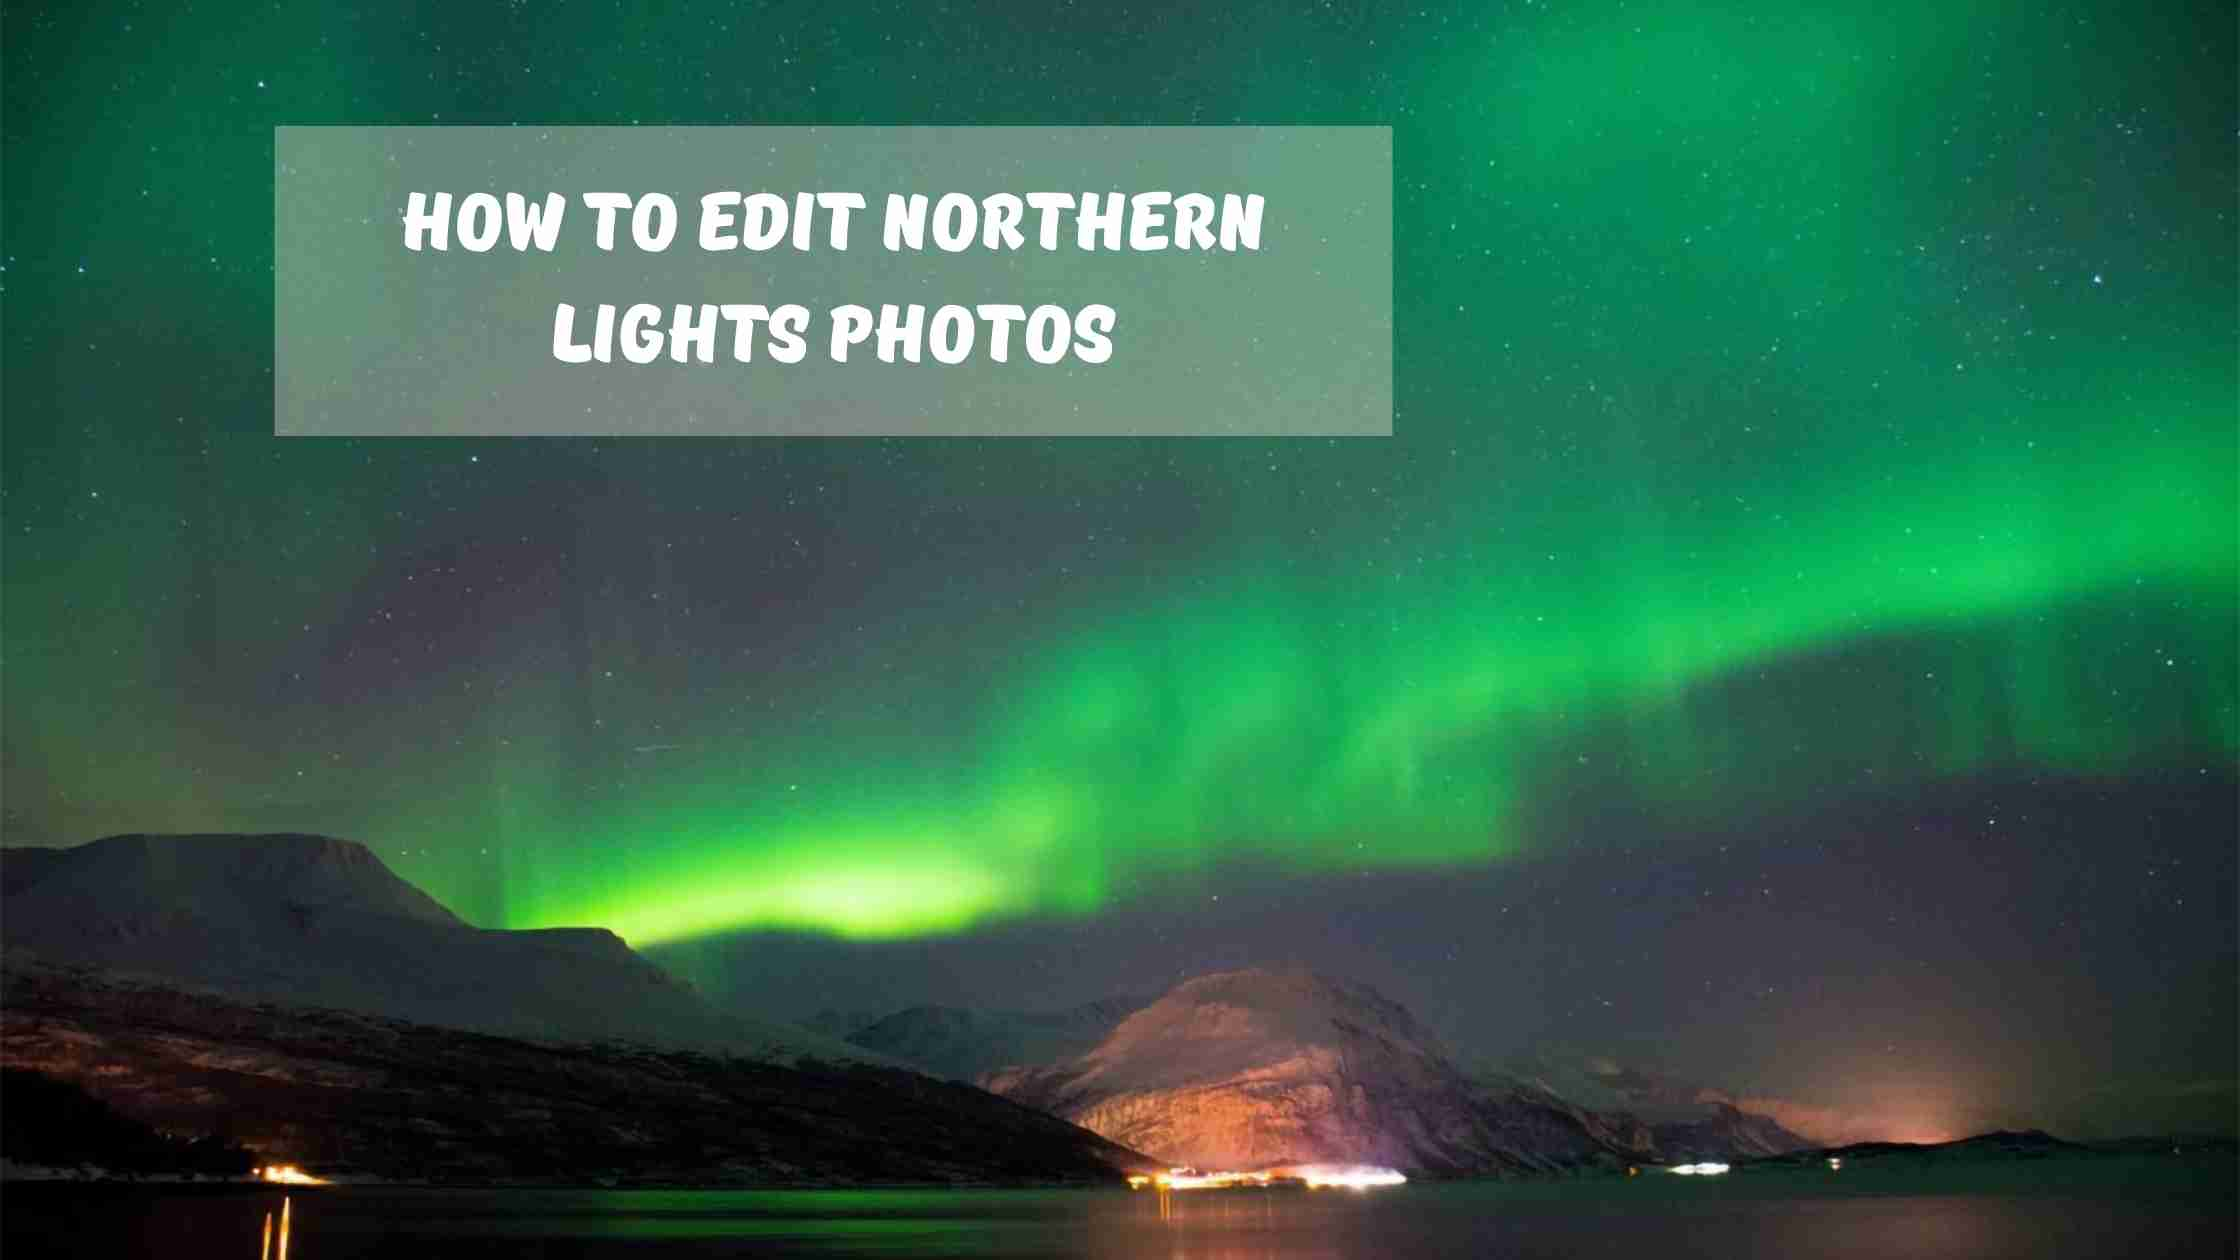 How To Edit Northern Lights Photos